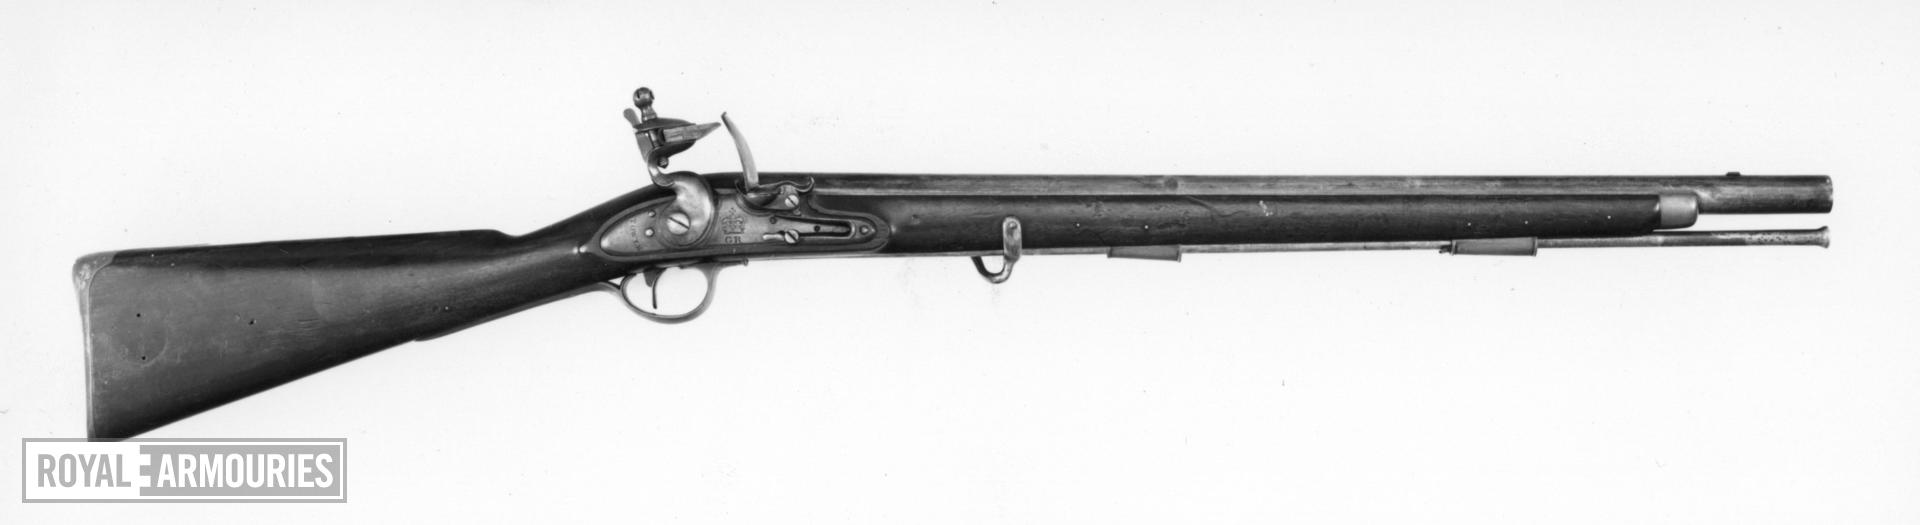 Flintlock muzzle-loading military carbine - Pattern 1796 Dragoon